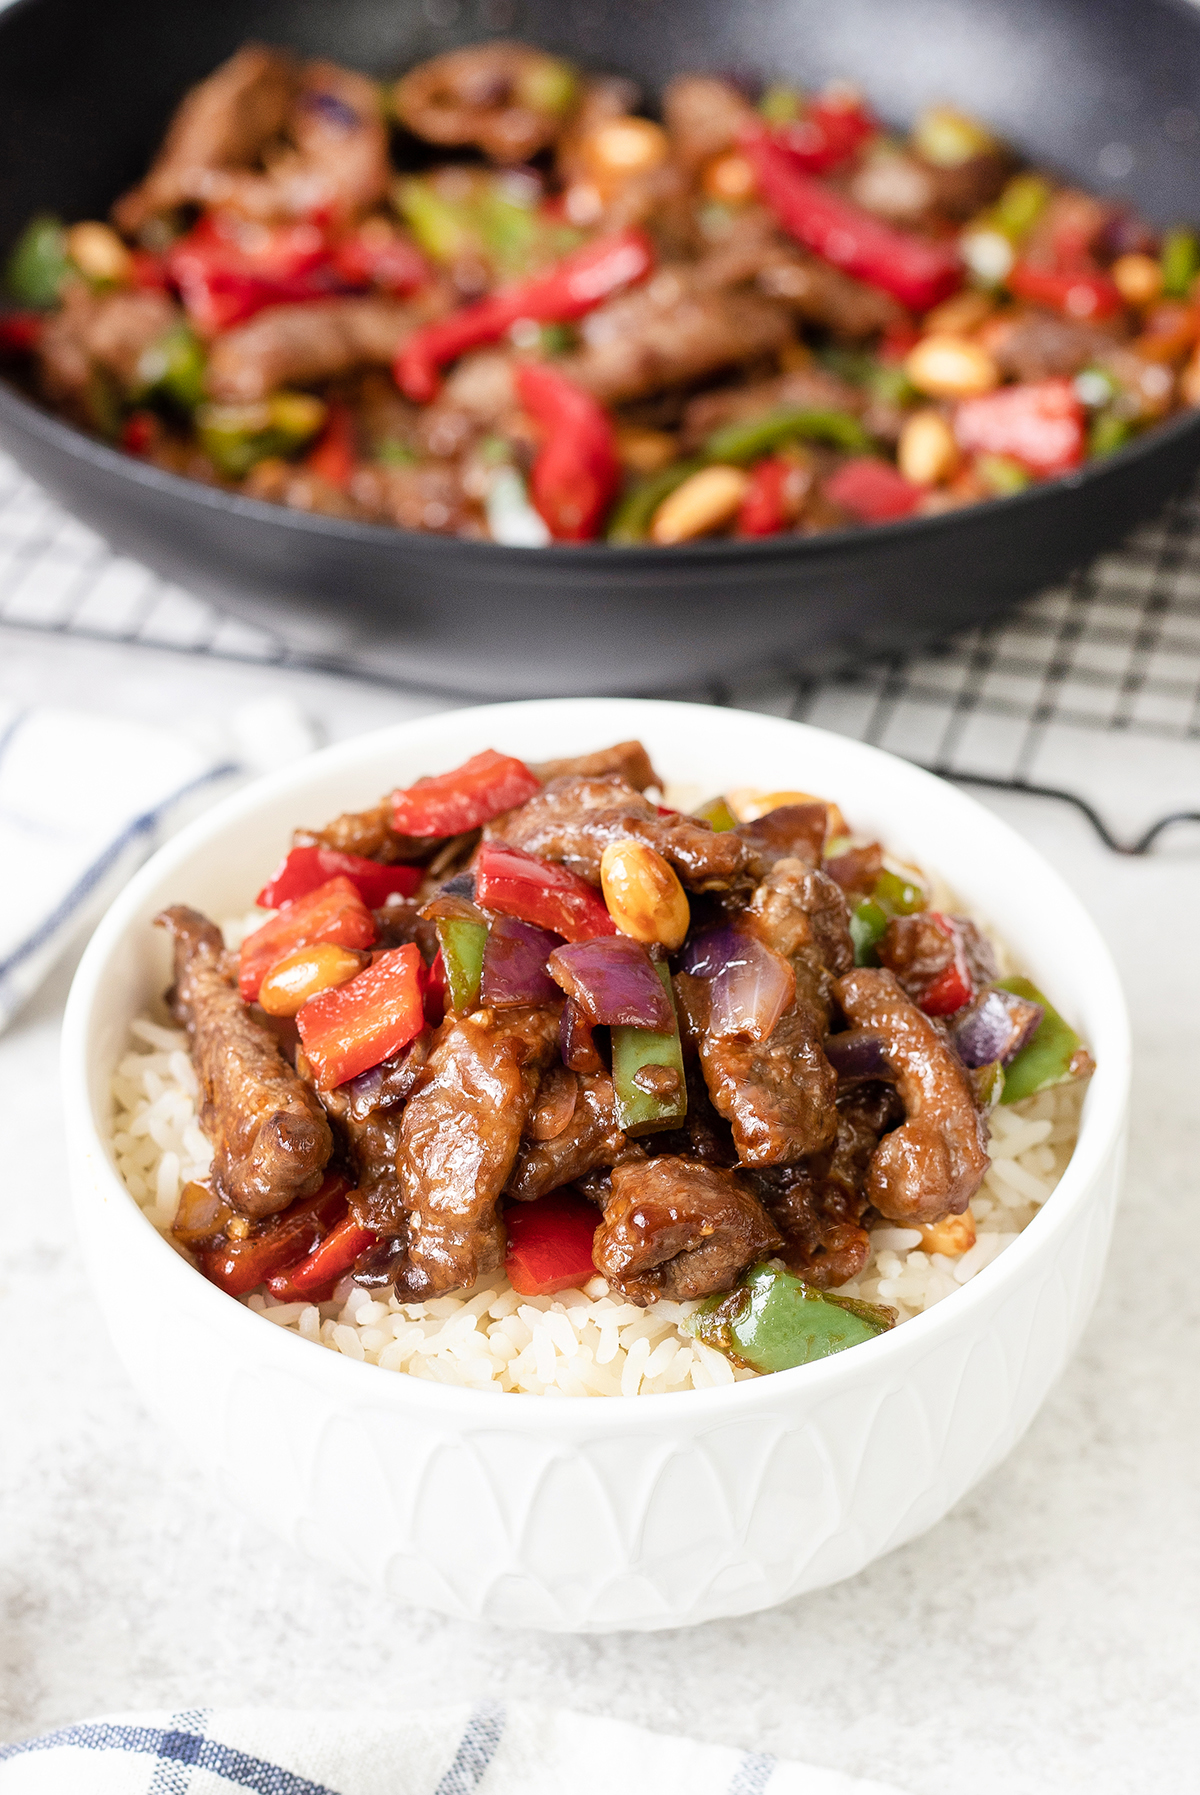 Kung Pao Beef is a Chinese stir fry dish